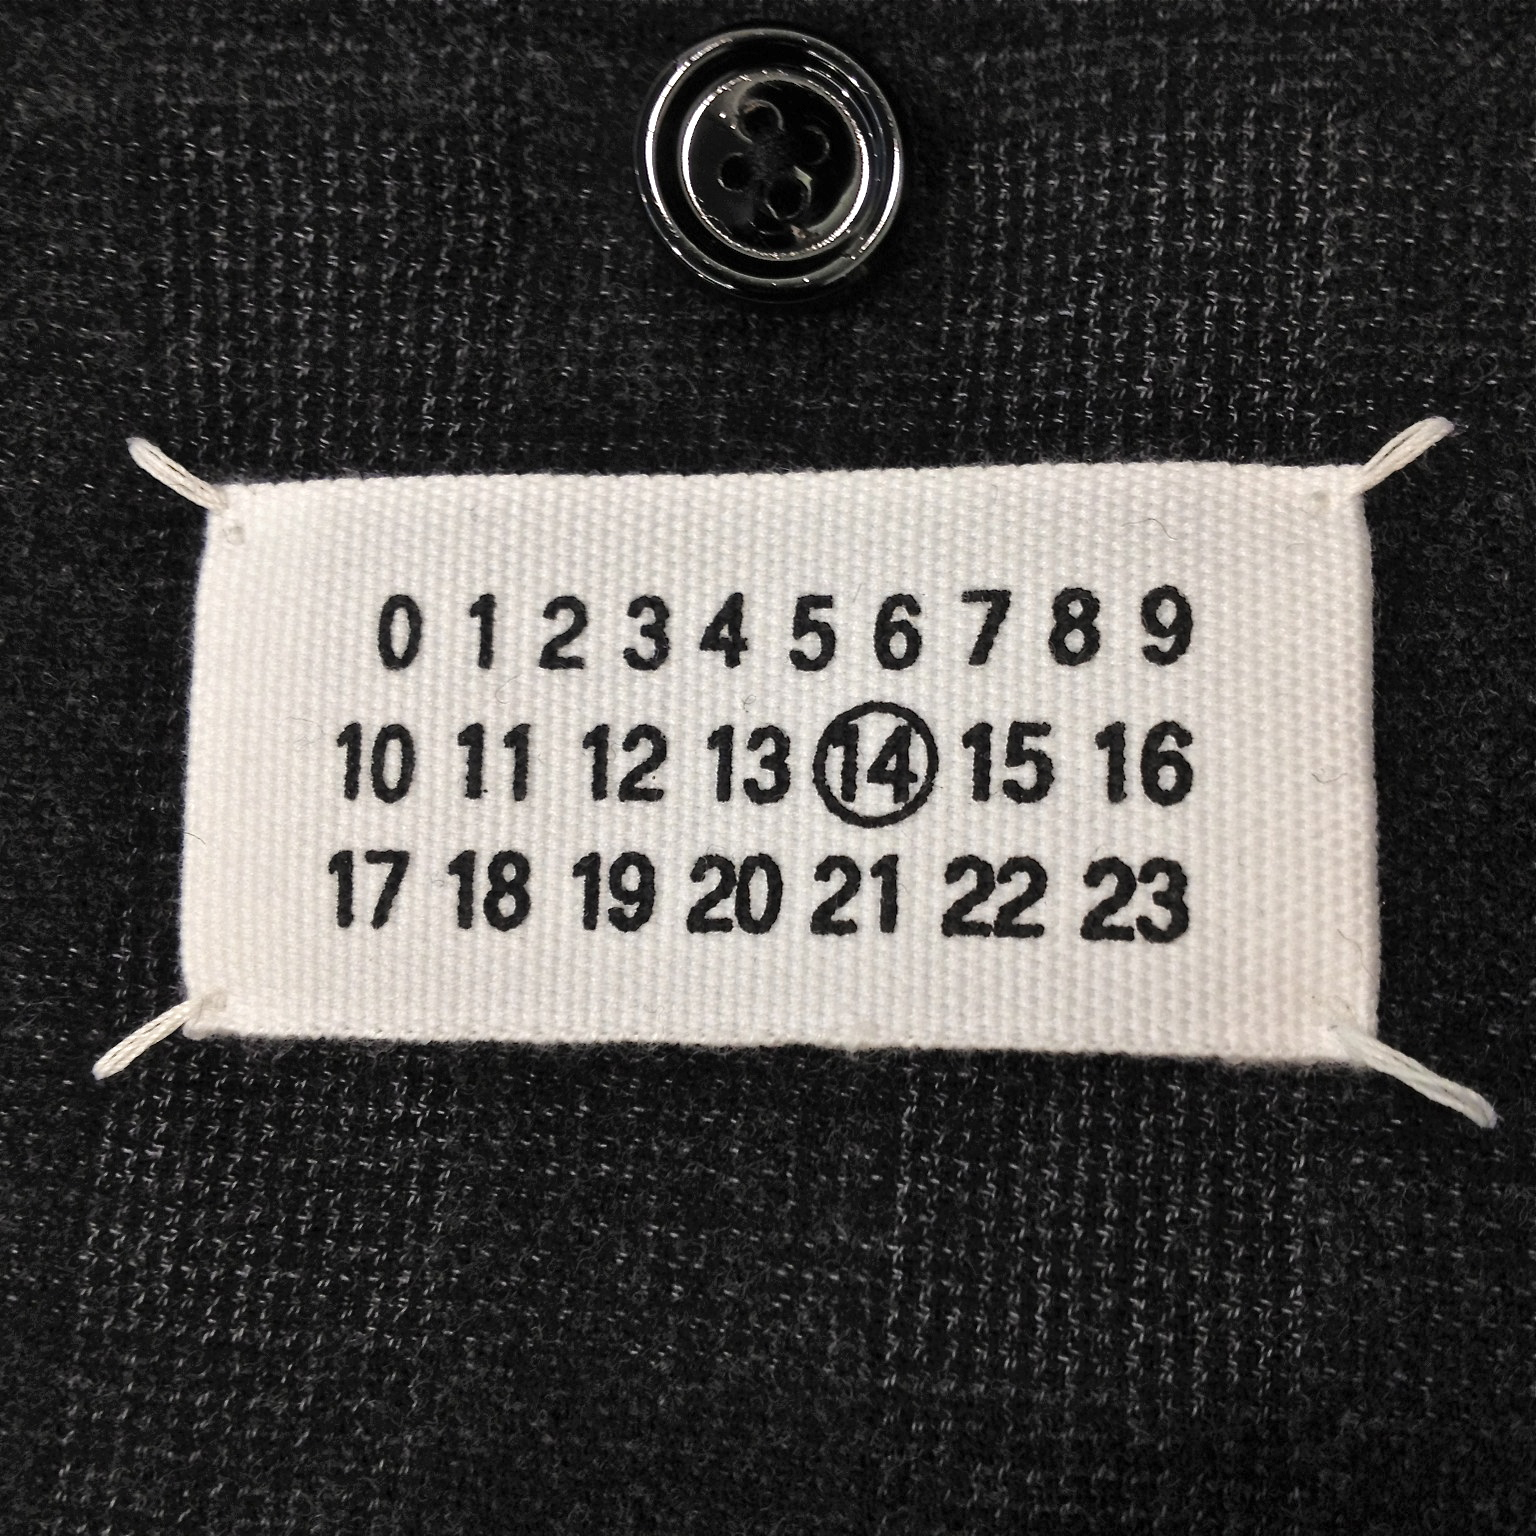 The Maison Martin Margiela label